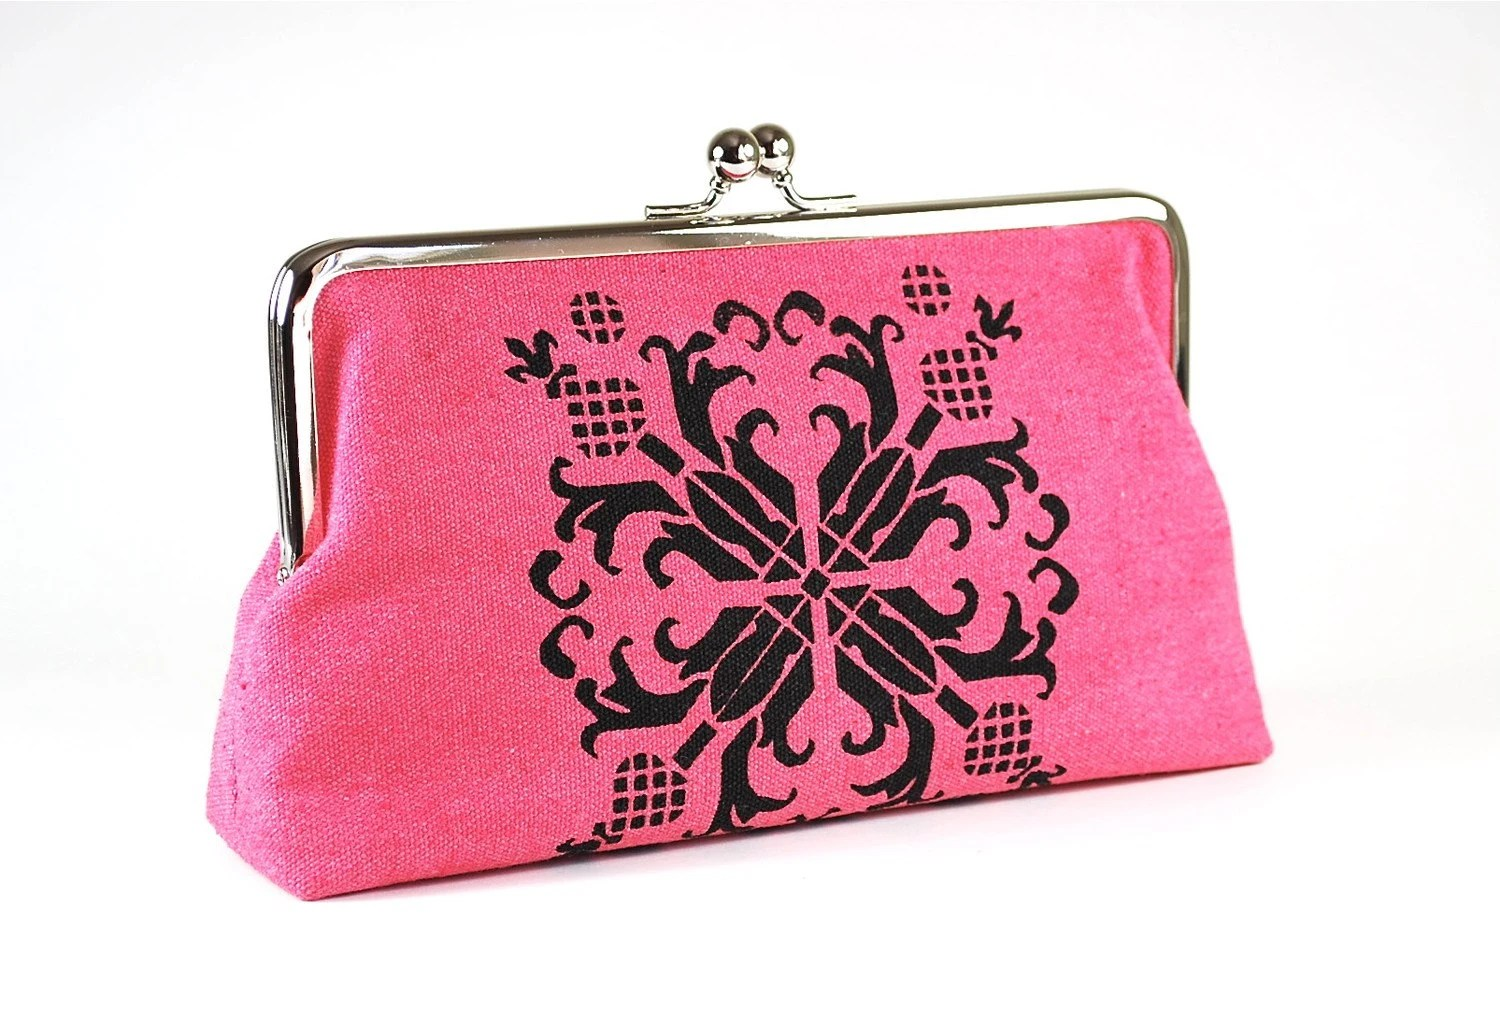 Honeysuckle Pink hemp clutch purse with black floral motif